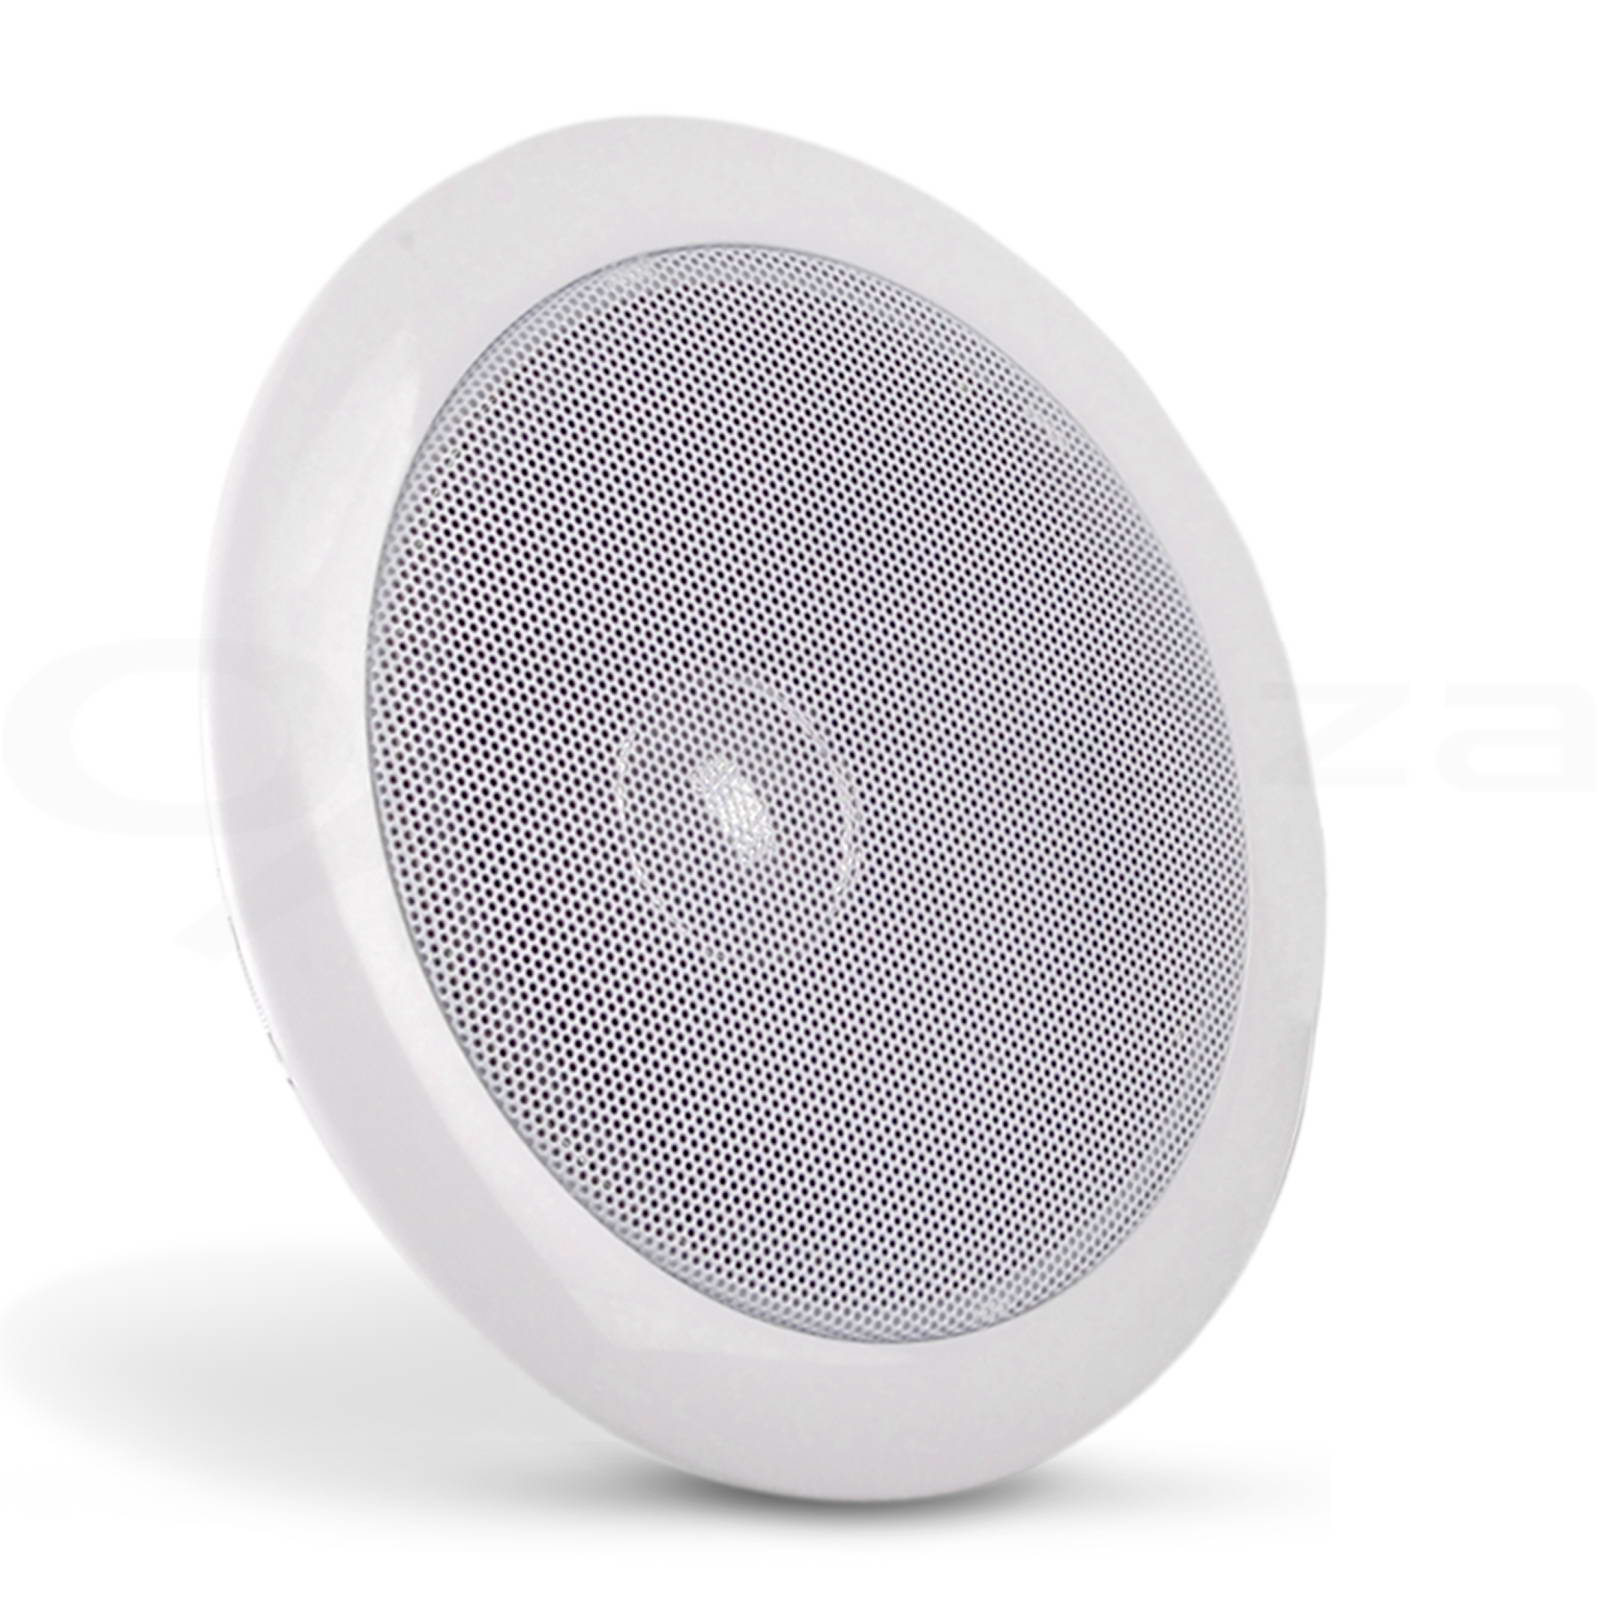 2-x-6-034-Inch-In-Ceiling-Wall-Speakers-80W-Pair-Home-Theatre-Indoor-Outdoor-Round